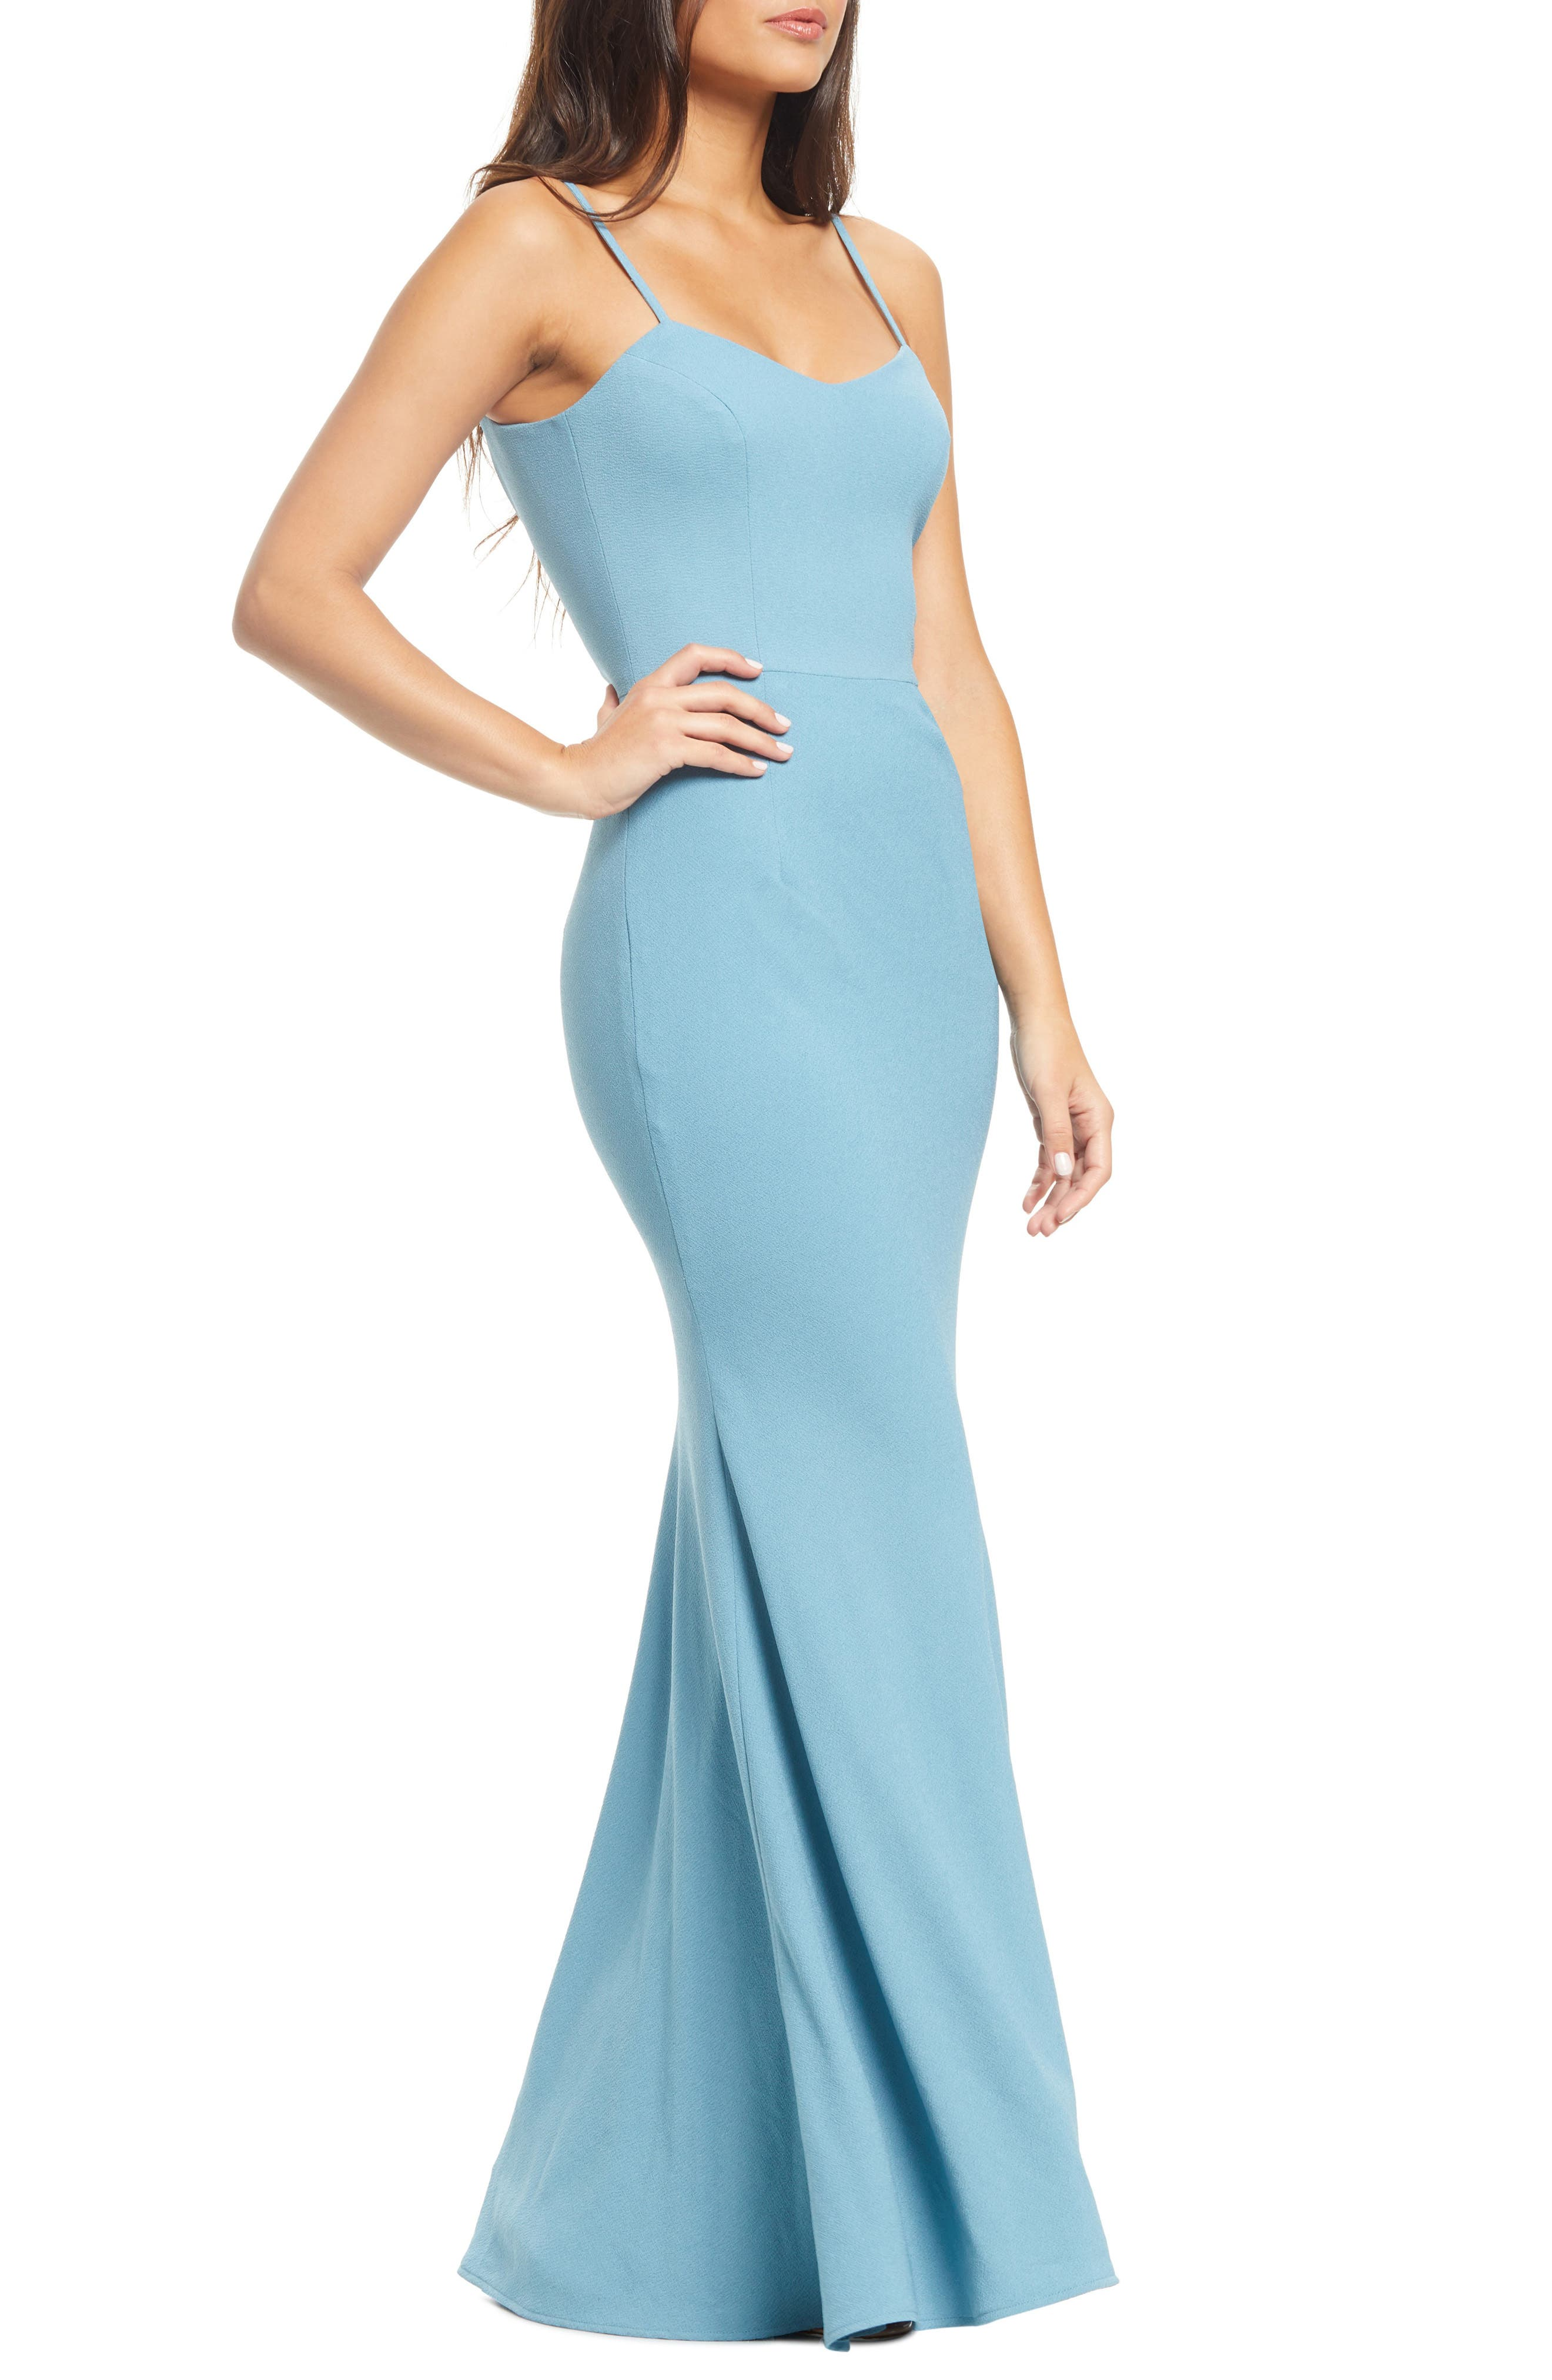 DRESS THE POPULATION, Jodi Crepe Evening Dress, Main thumbnail 1, color, SEA BREEZE